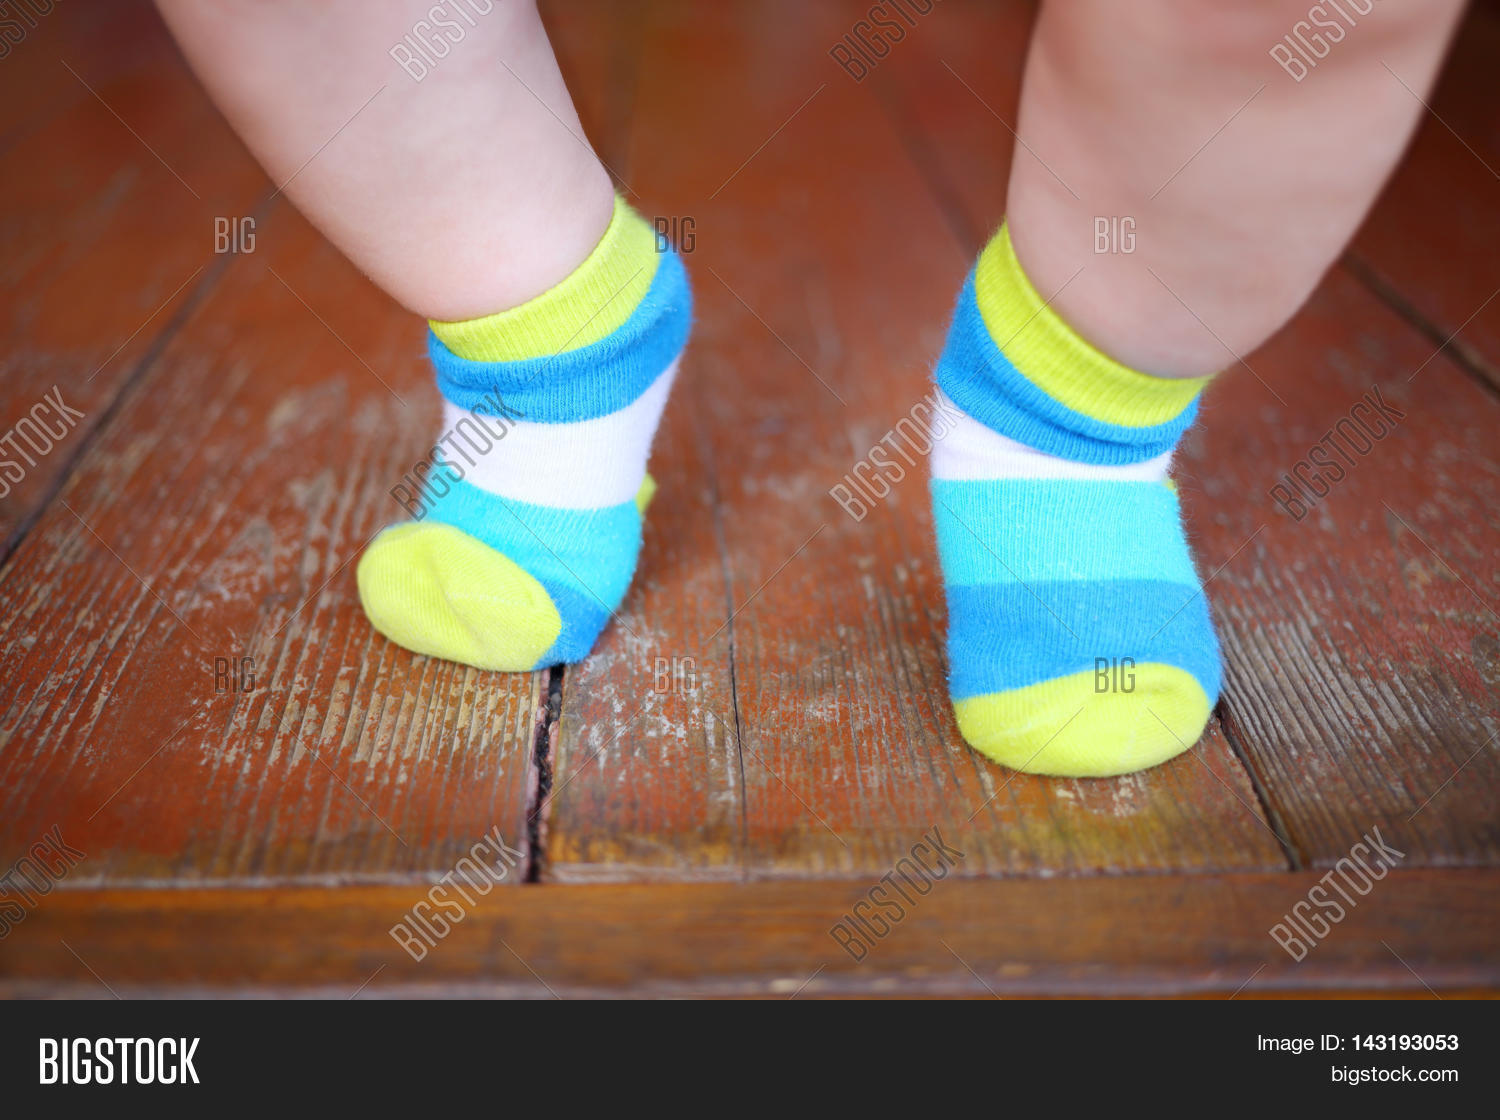 moderate price 2019 real big discount of 2019 Feet Little Toddler Image & Photo (Free Trial) | Bigstock